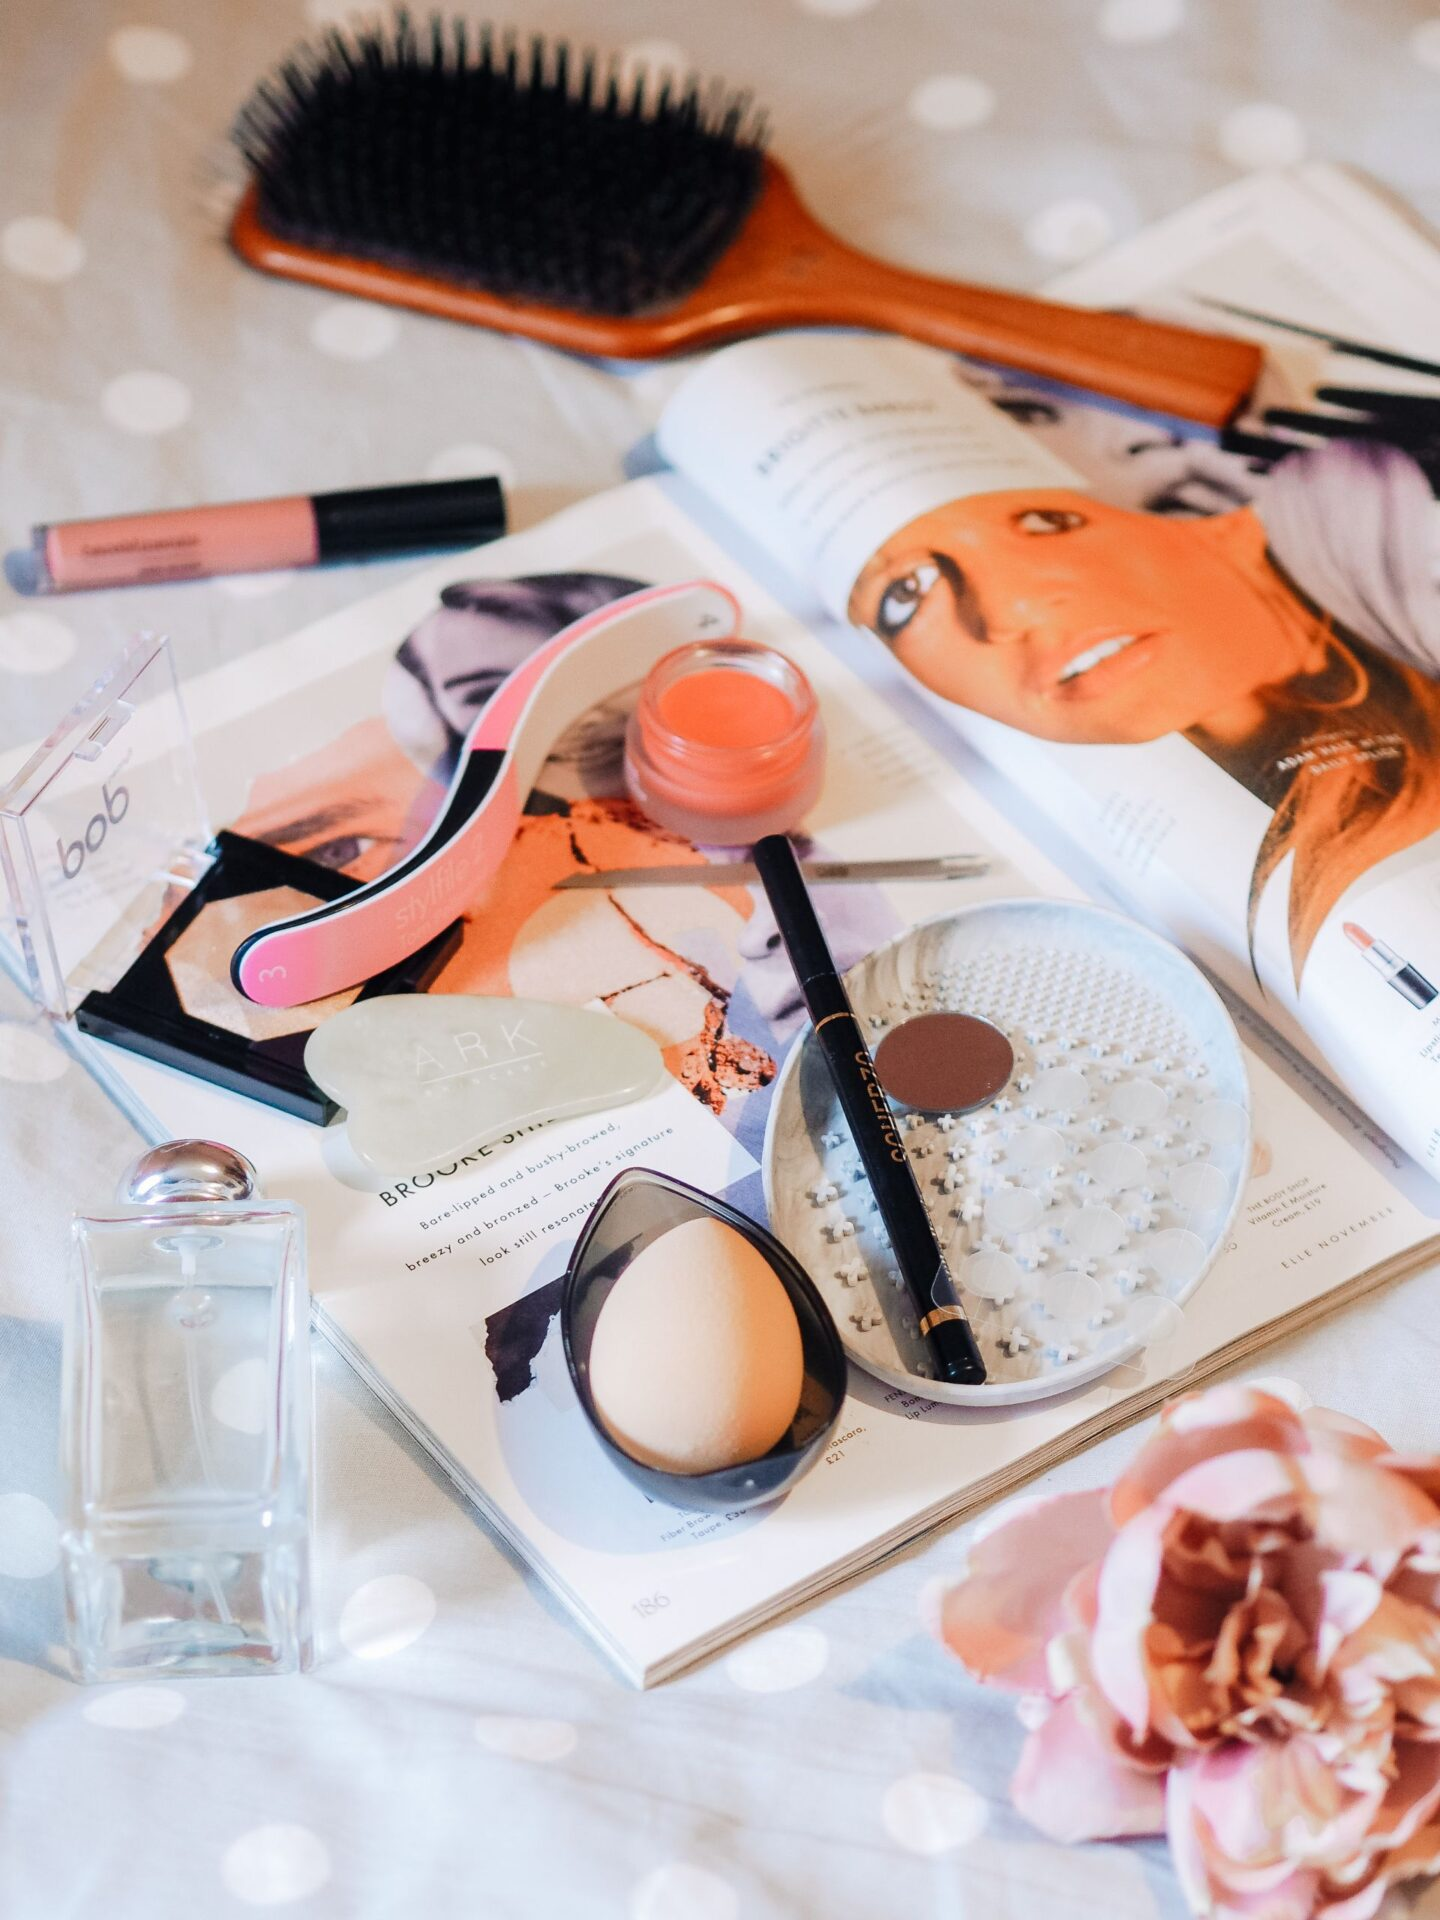 7 Revolutionary Beauty Accessories You Never Knew You Needed